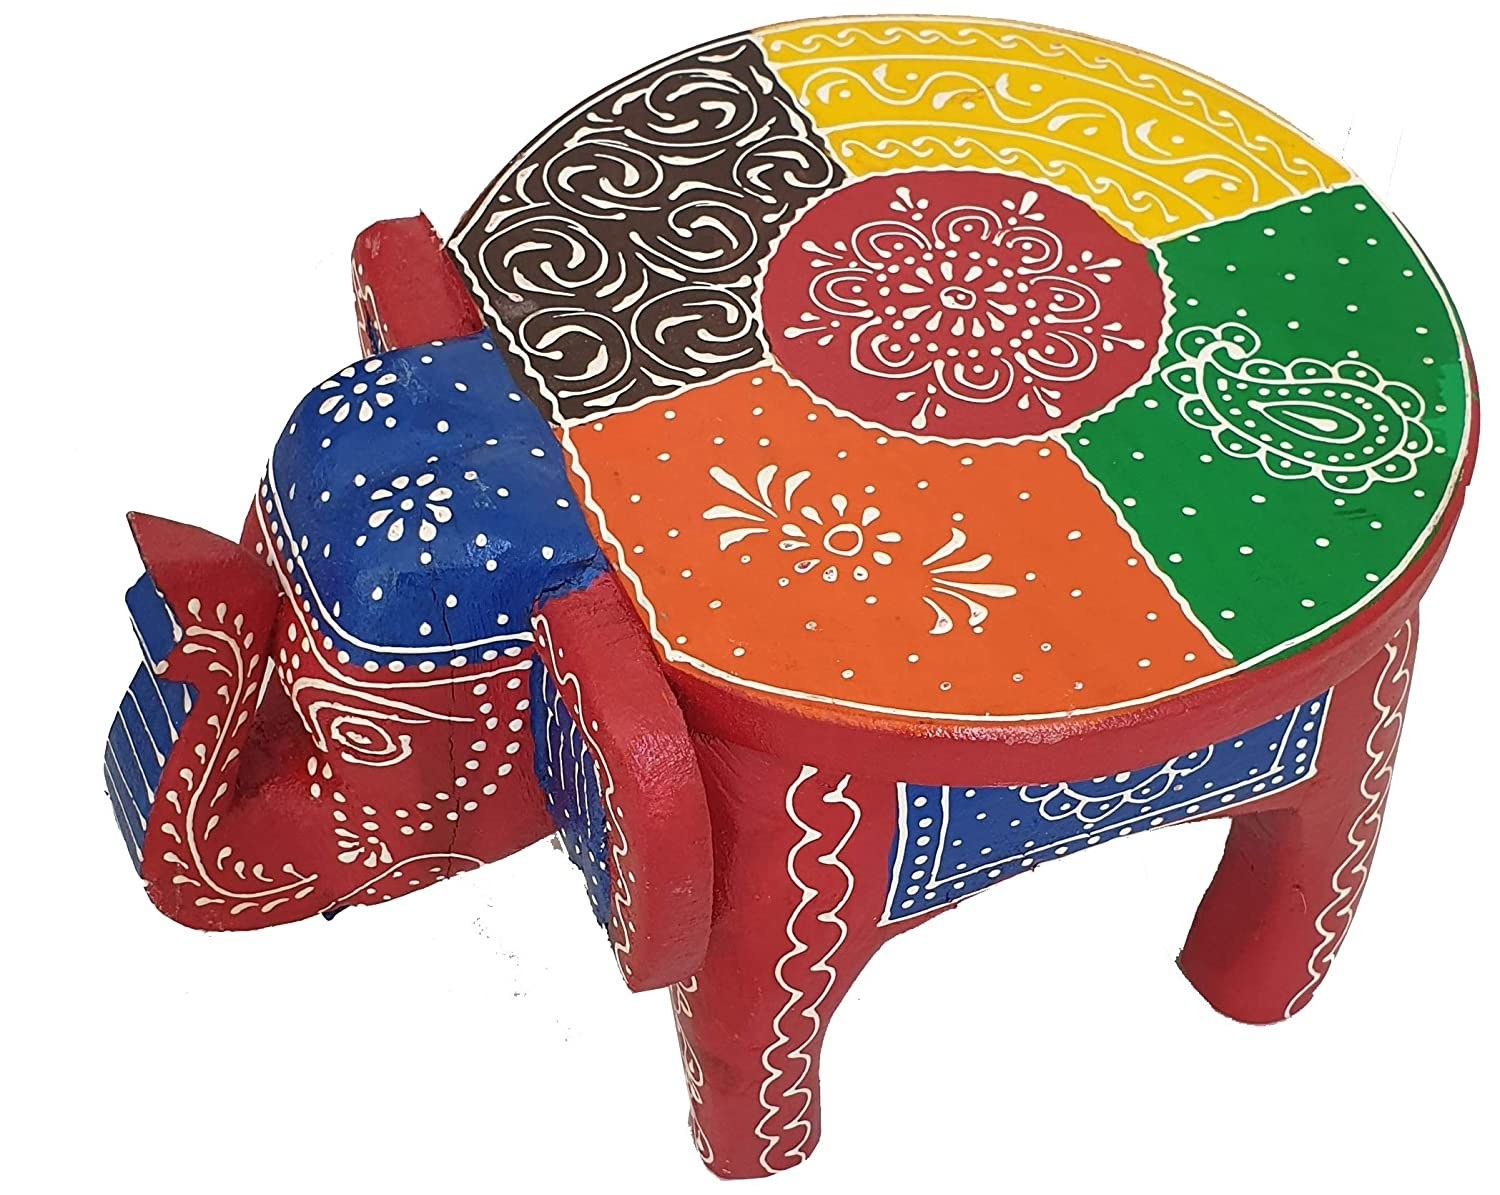 A colourful handpainted elephant table